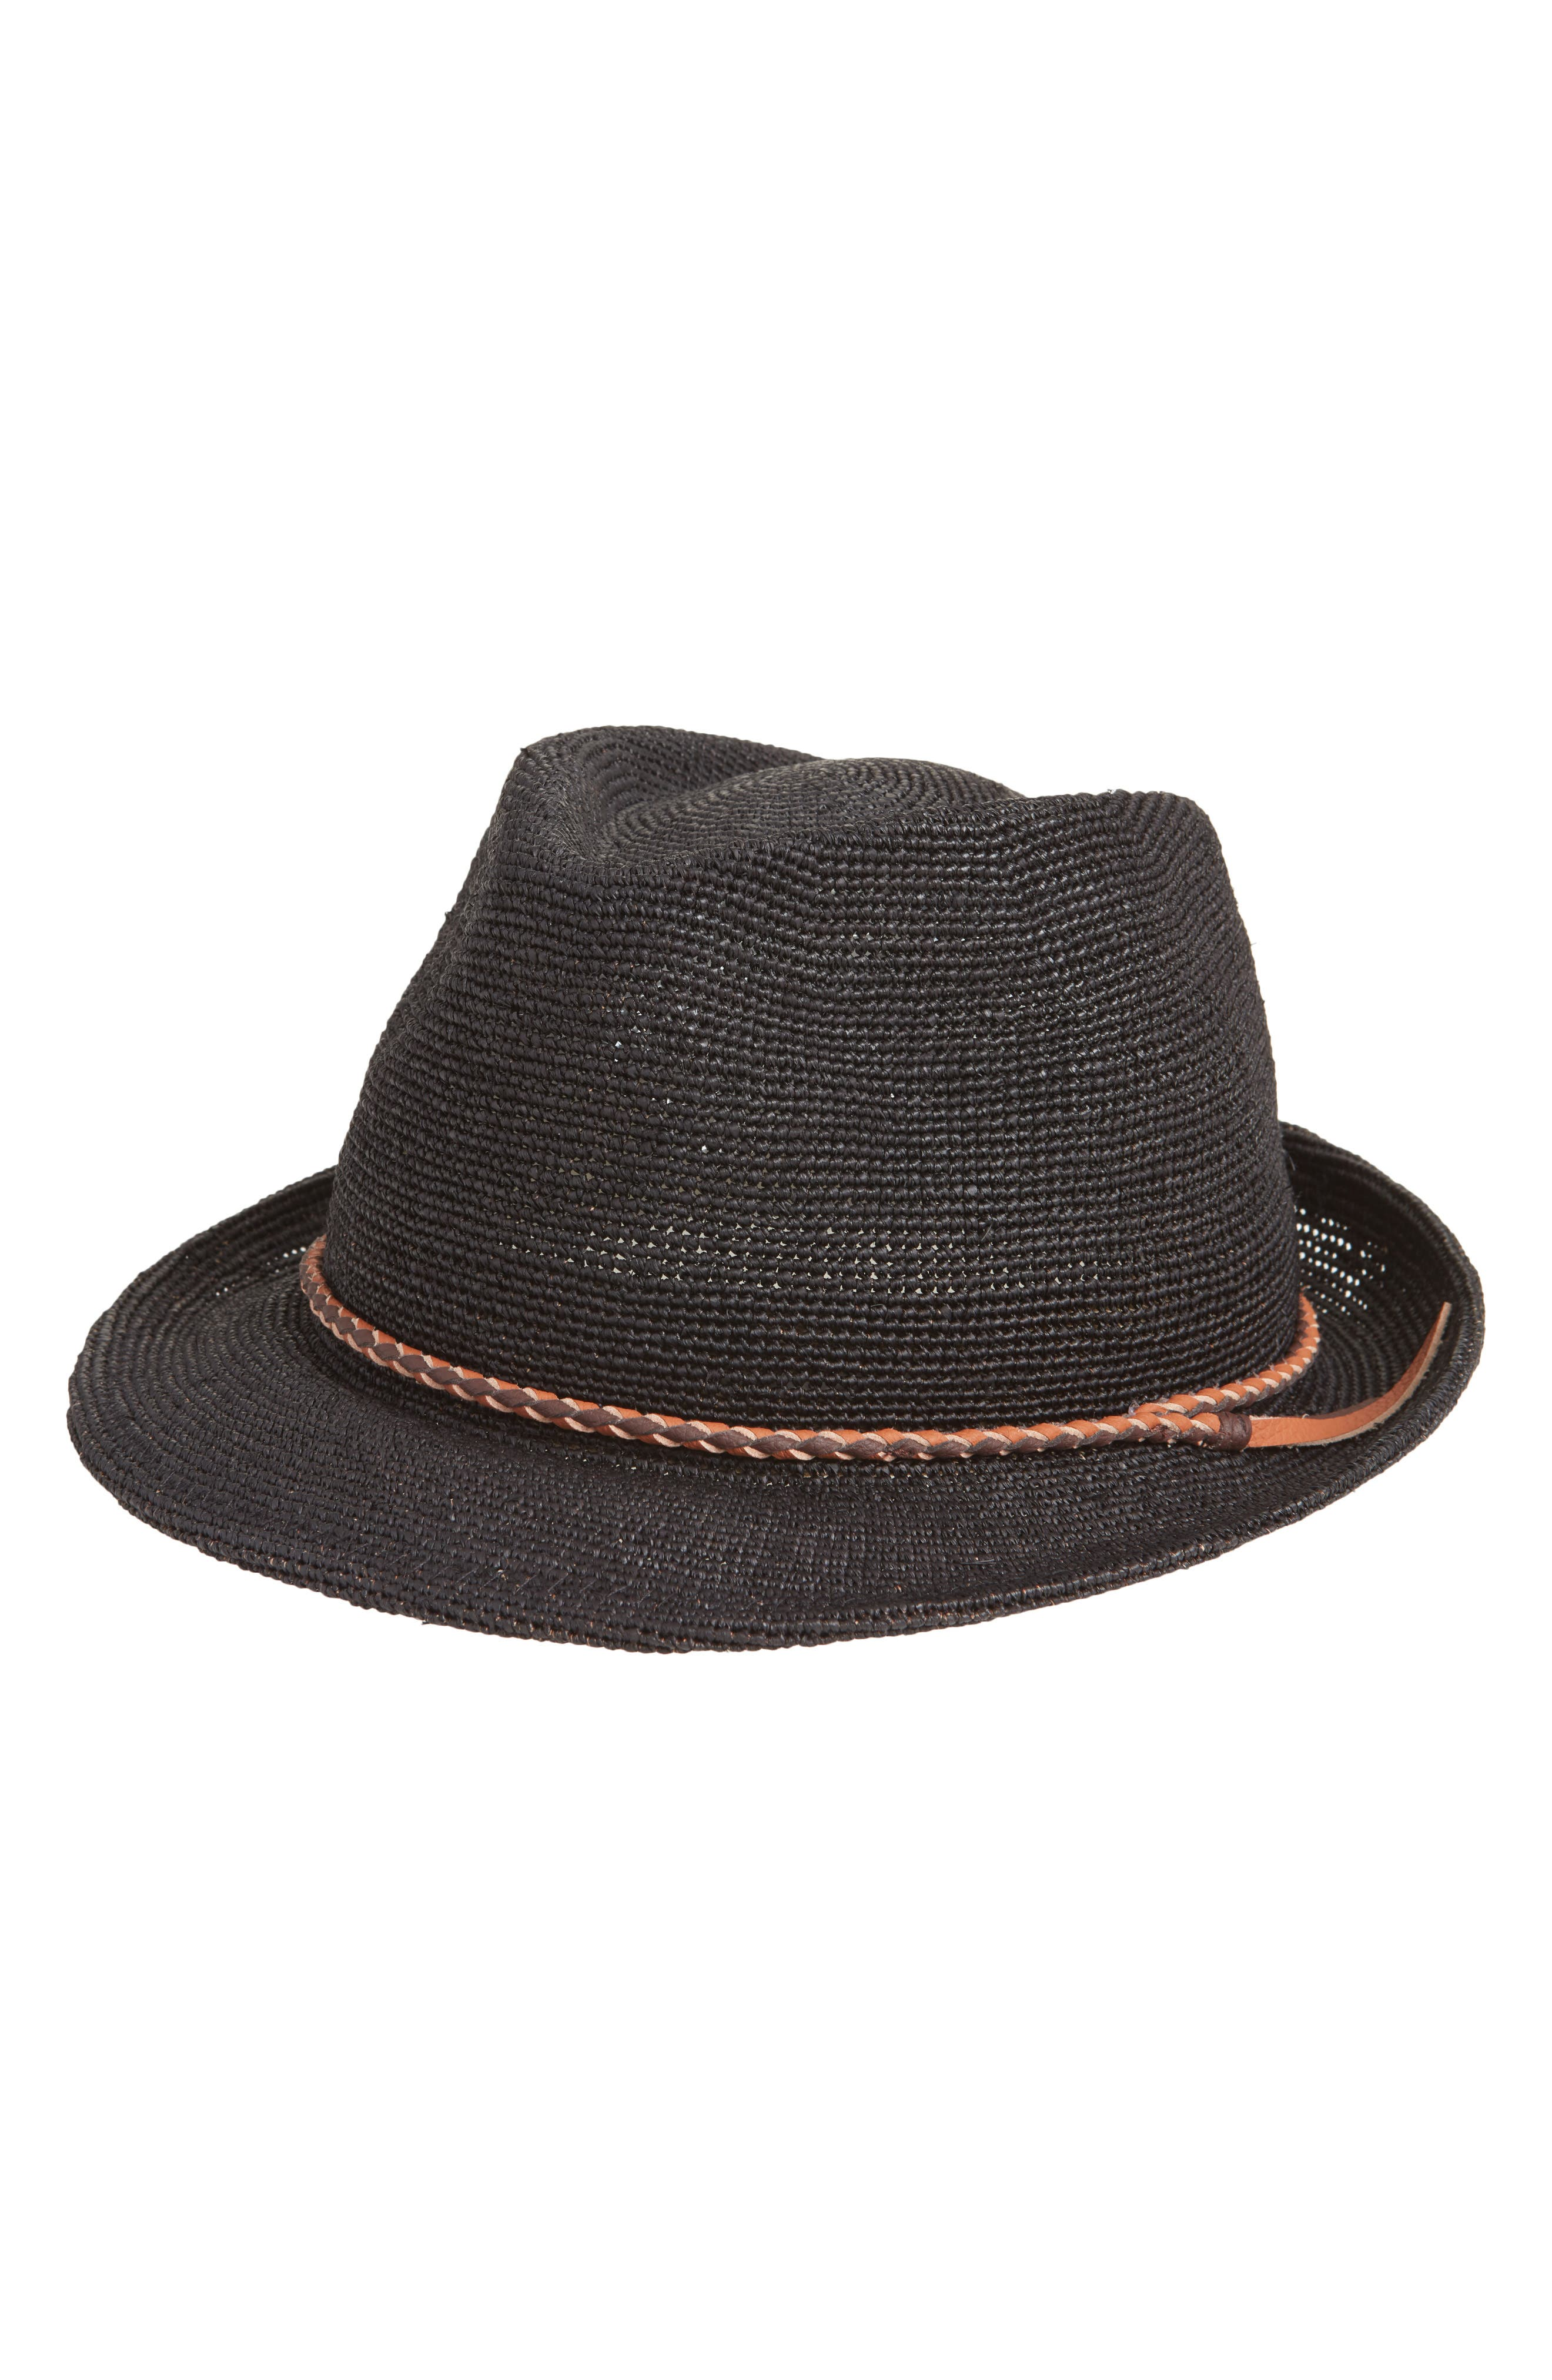 . Morning Glory Trilby